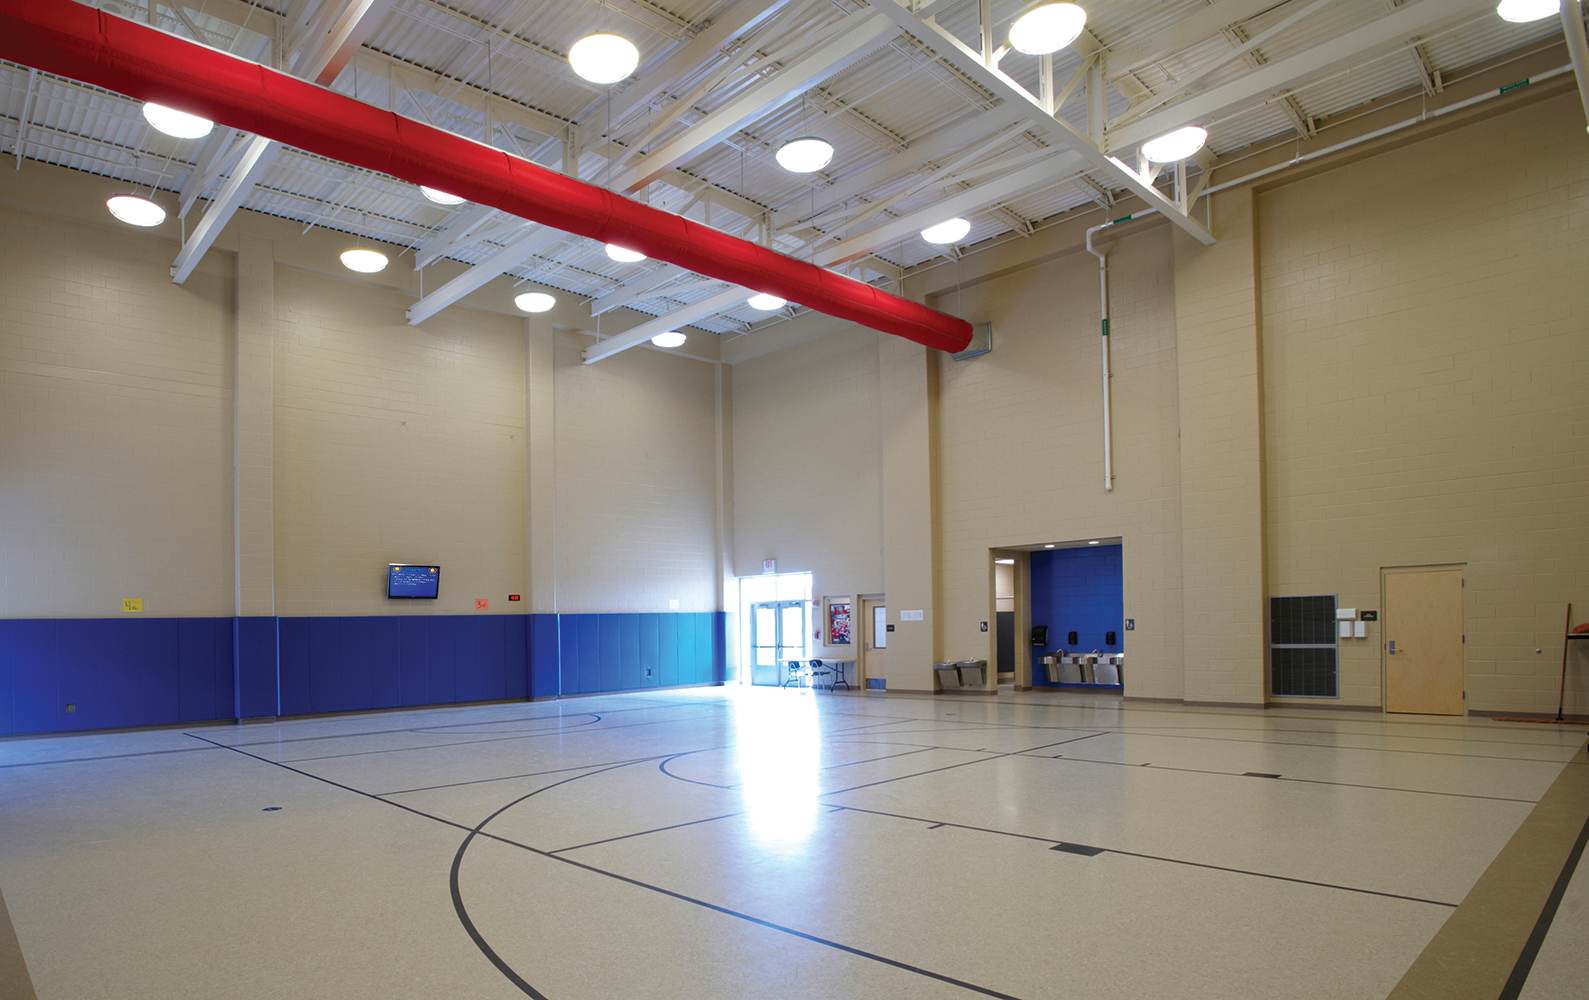 Midbay, a large light fixture for industrial and large venue applications, works well for this school gymnasium.